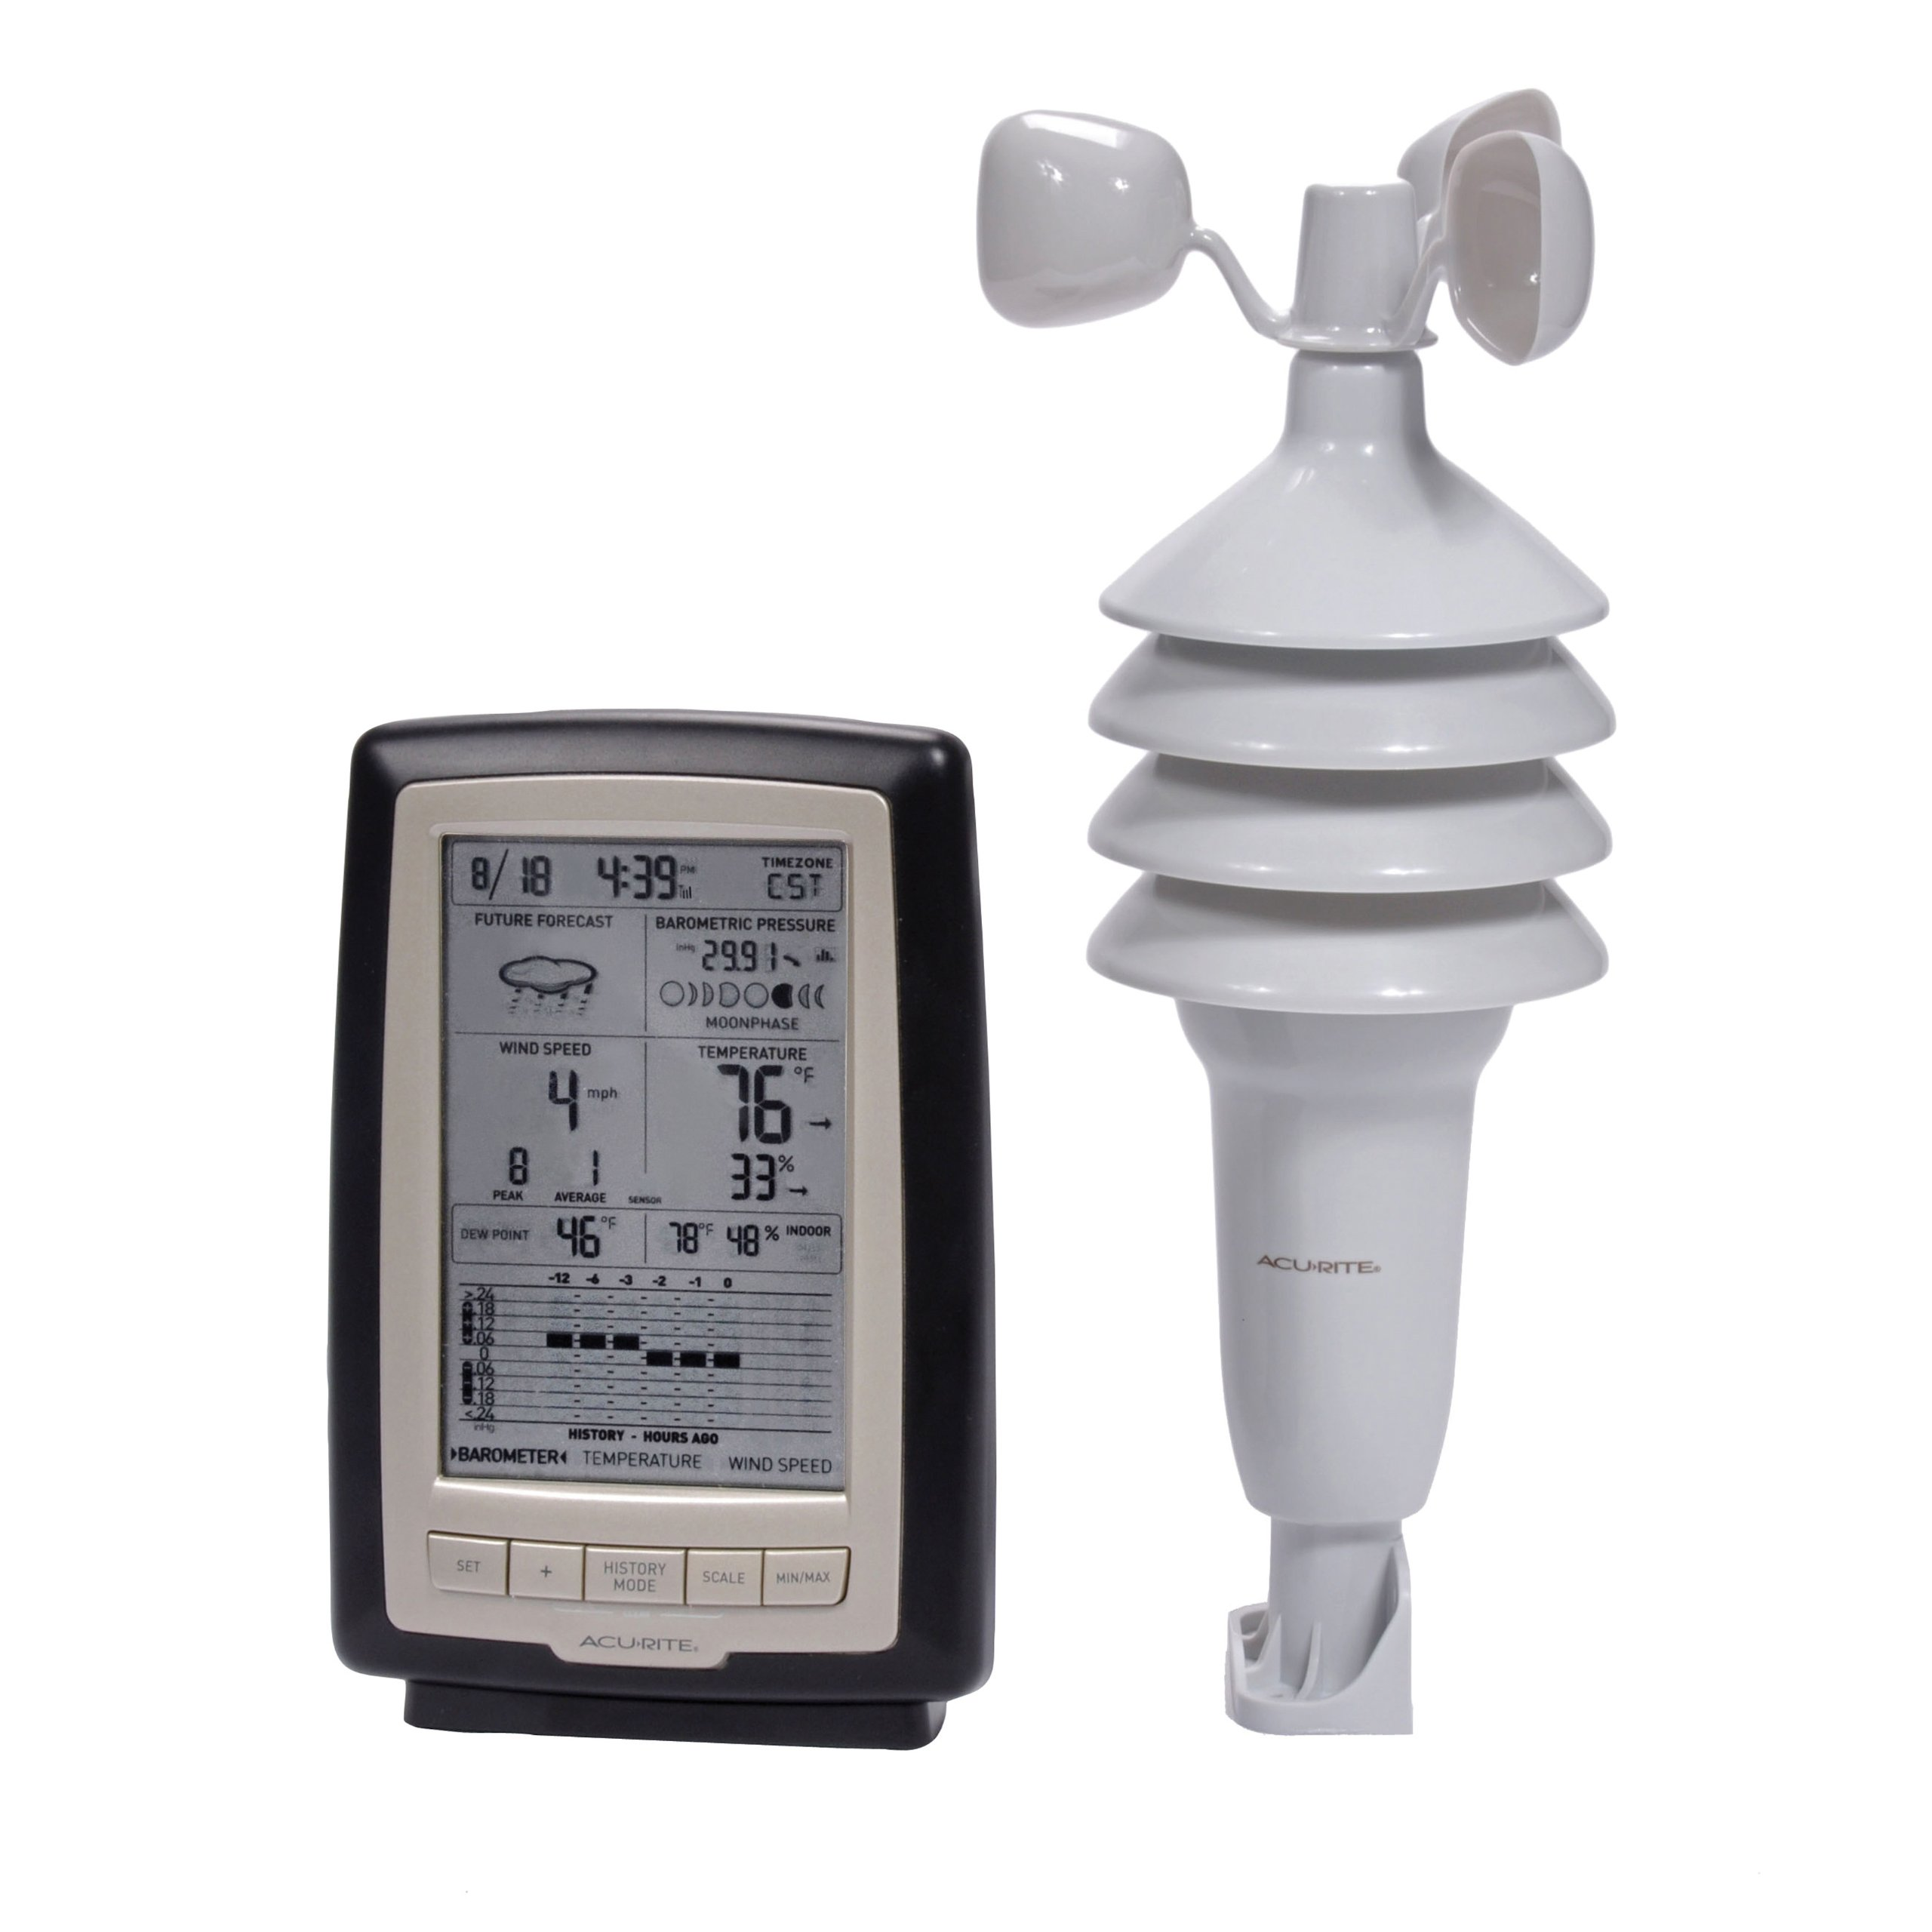 AcuRite 00638A2 Wireless Weather Station with Wind Sensor by AcuRite